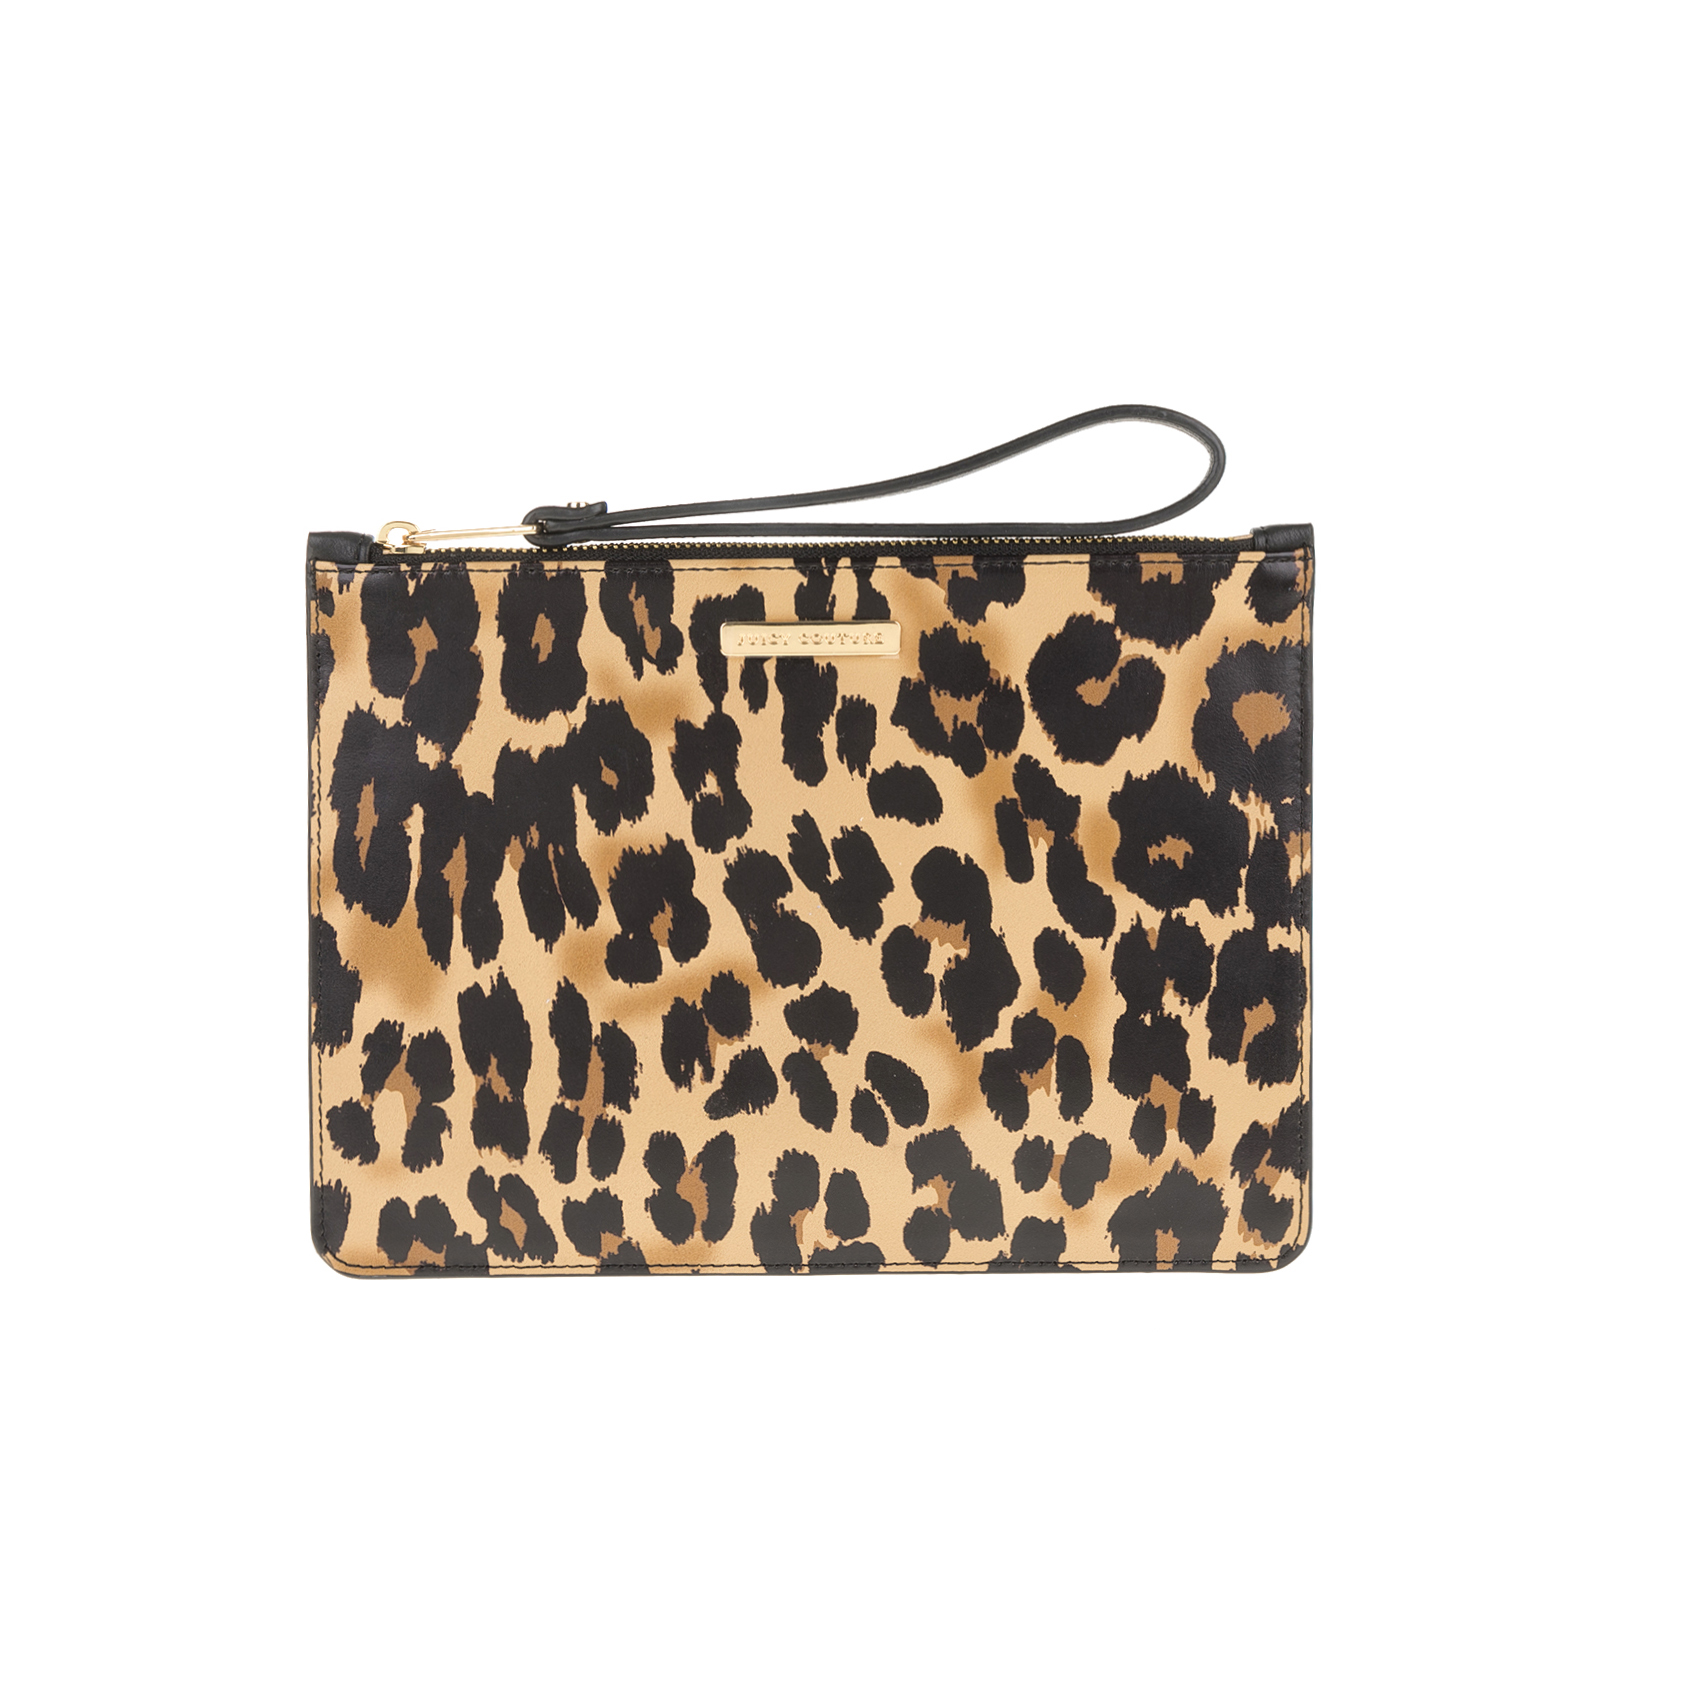 JUICY COUTURE – Τσαντάκι-πορτοφόλι JUICY COUTURE ZEPHYR LEOPARD MEDIUM 1533056.0-7100